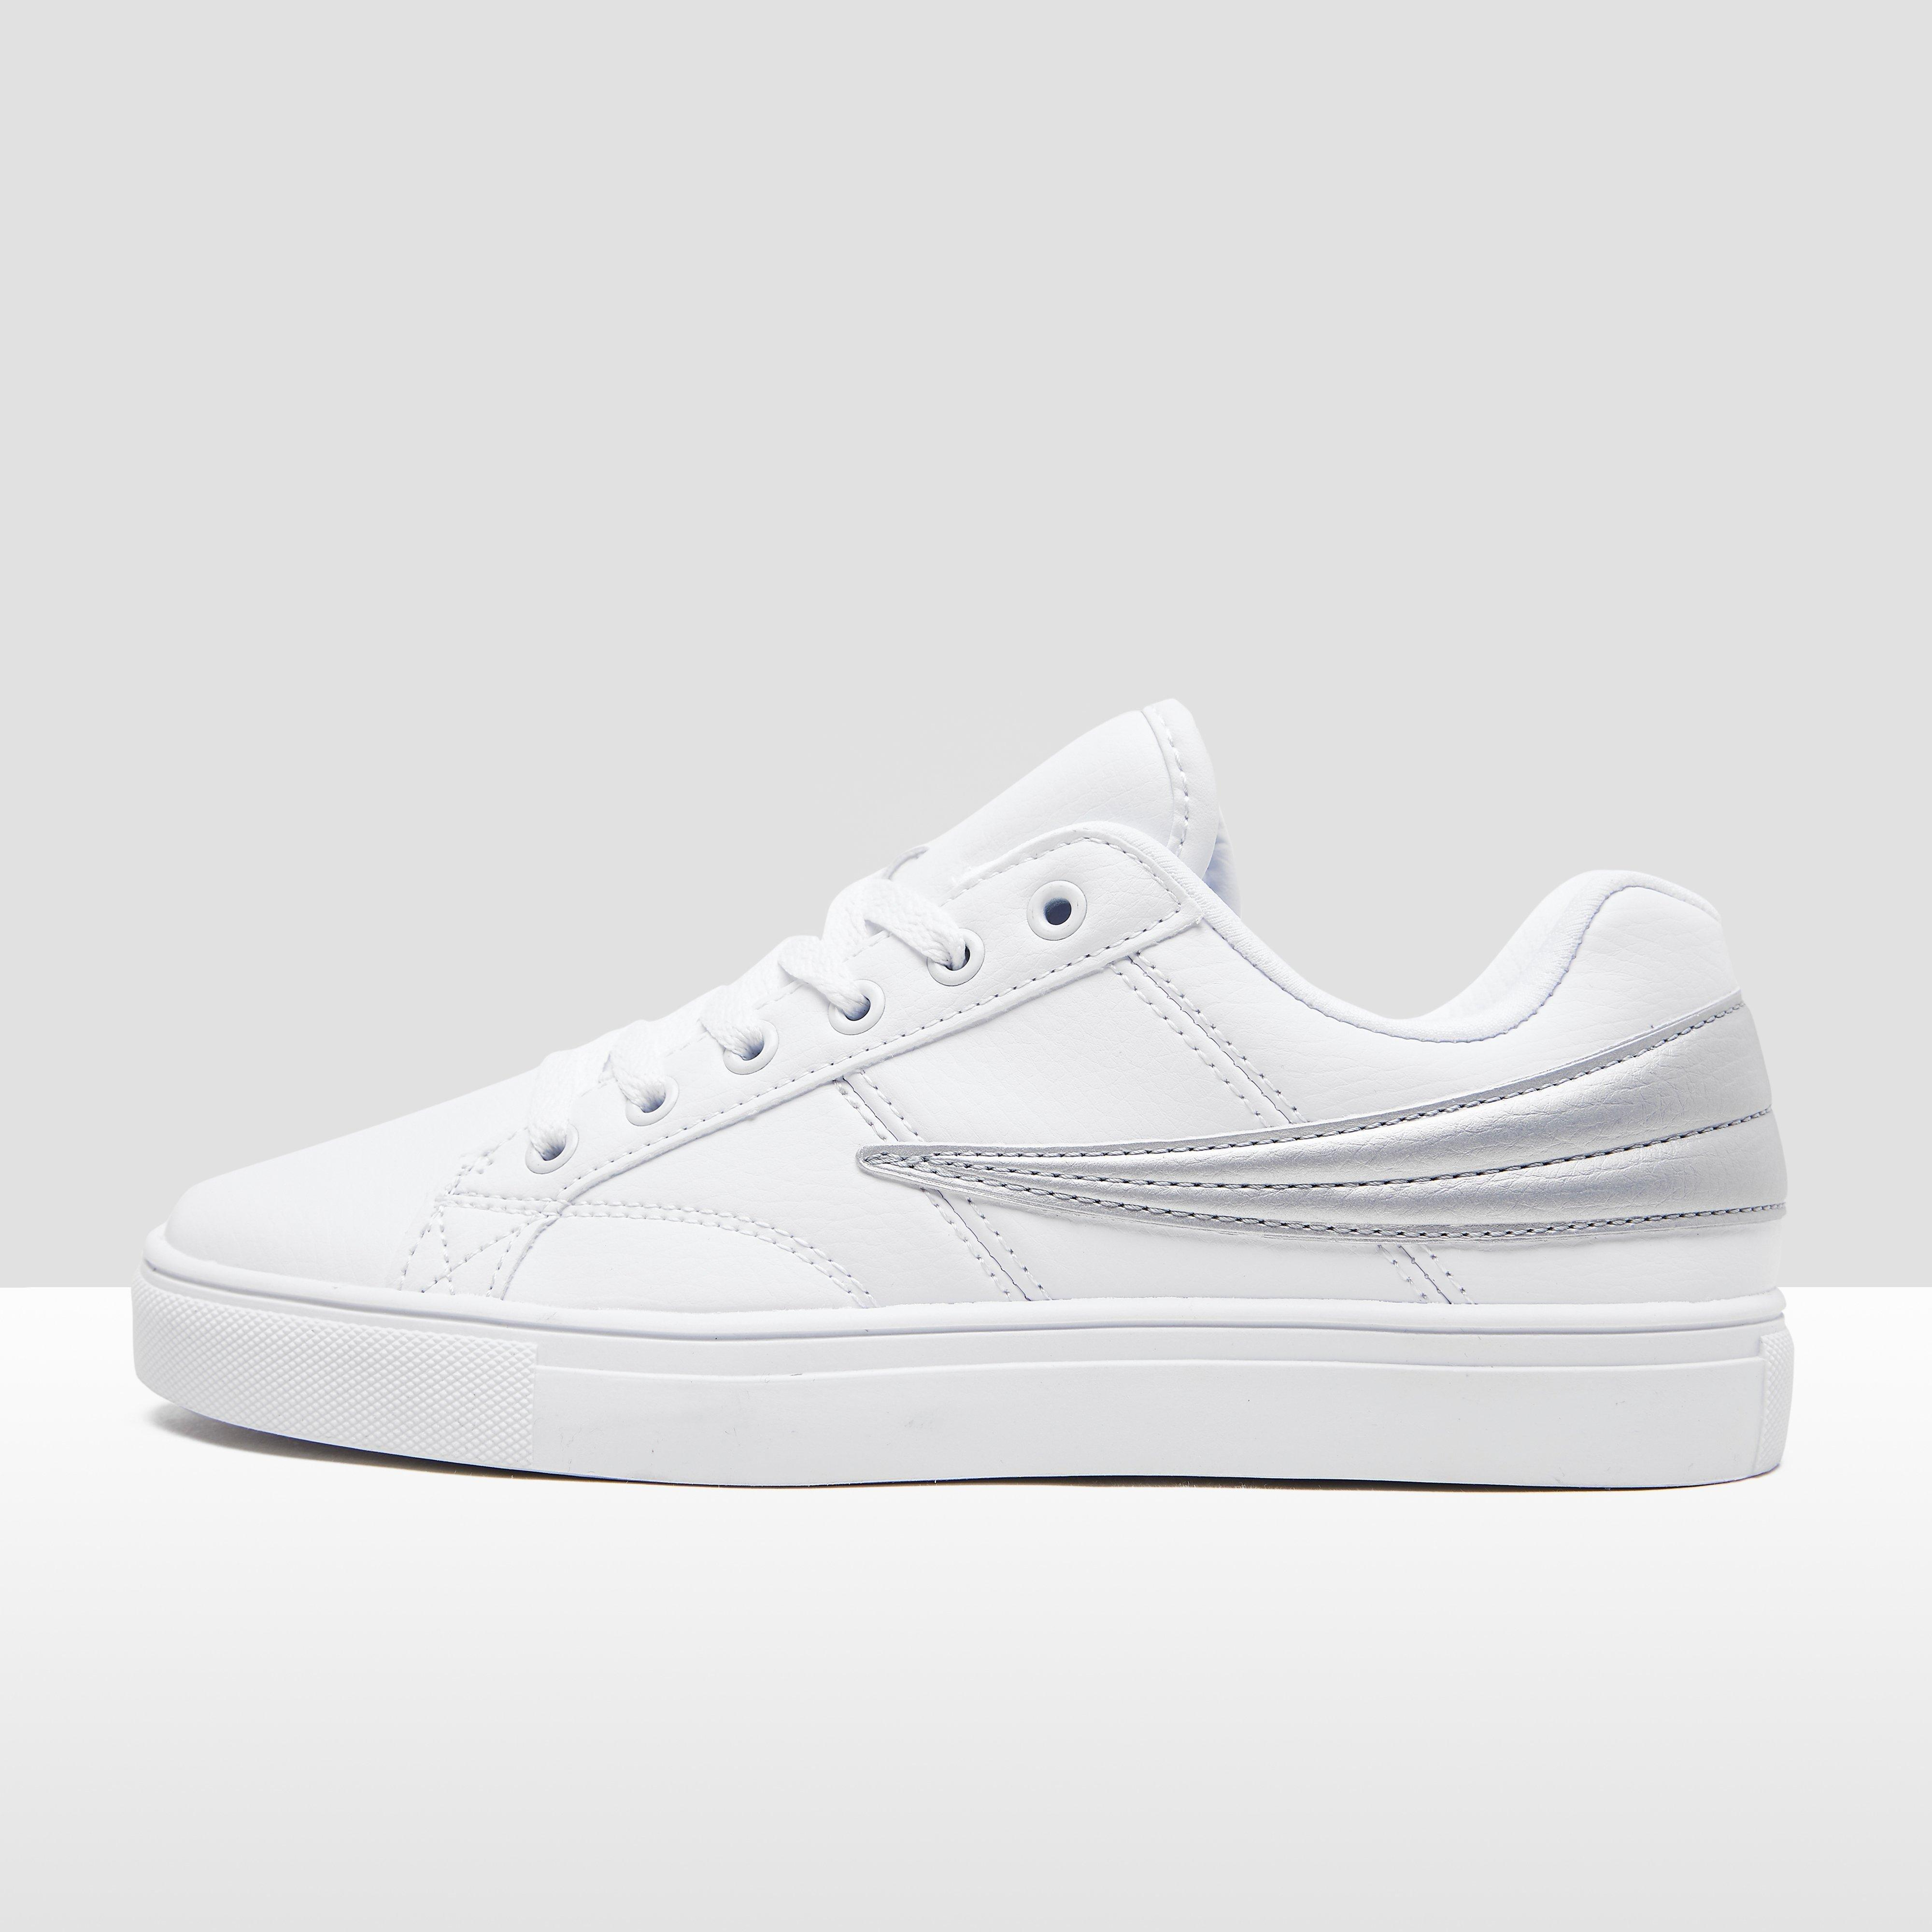 365643cc5bf Sneakers wit zilver